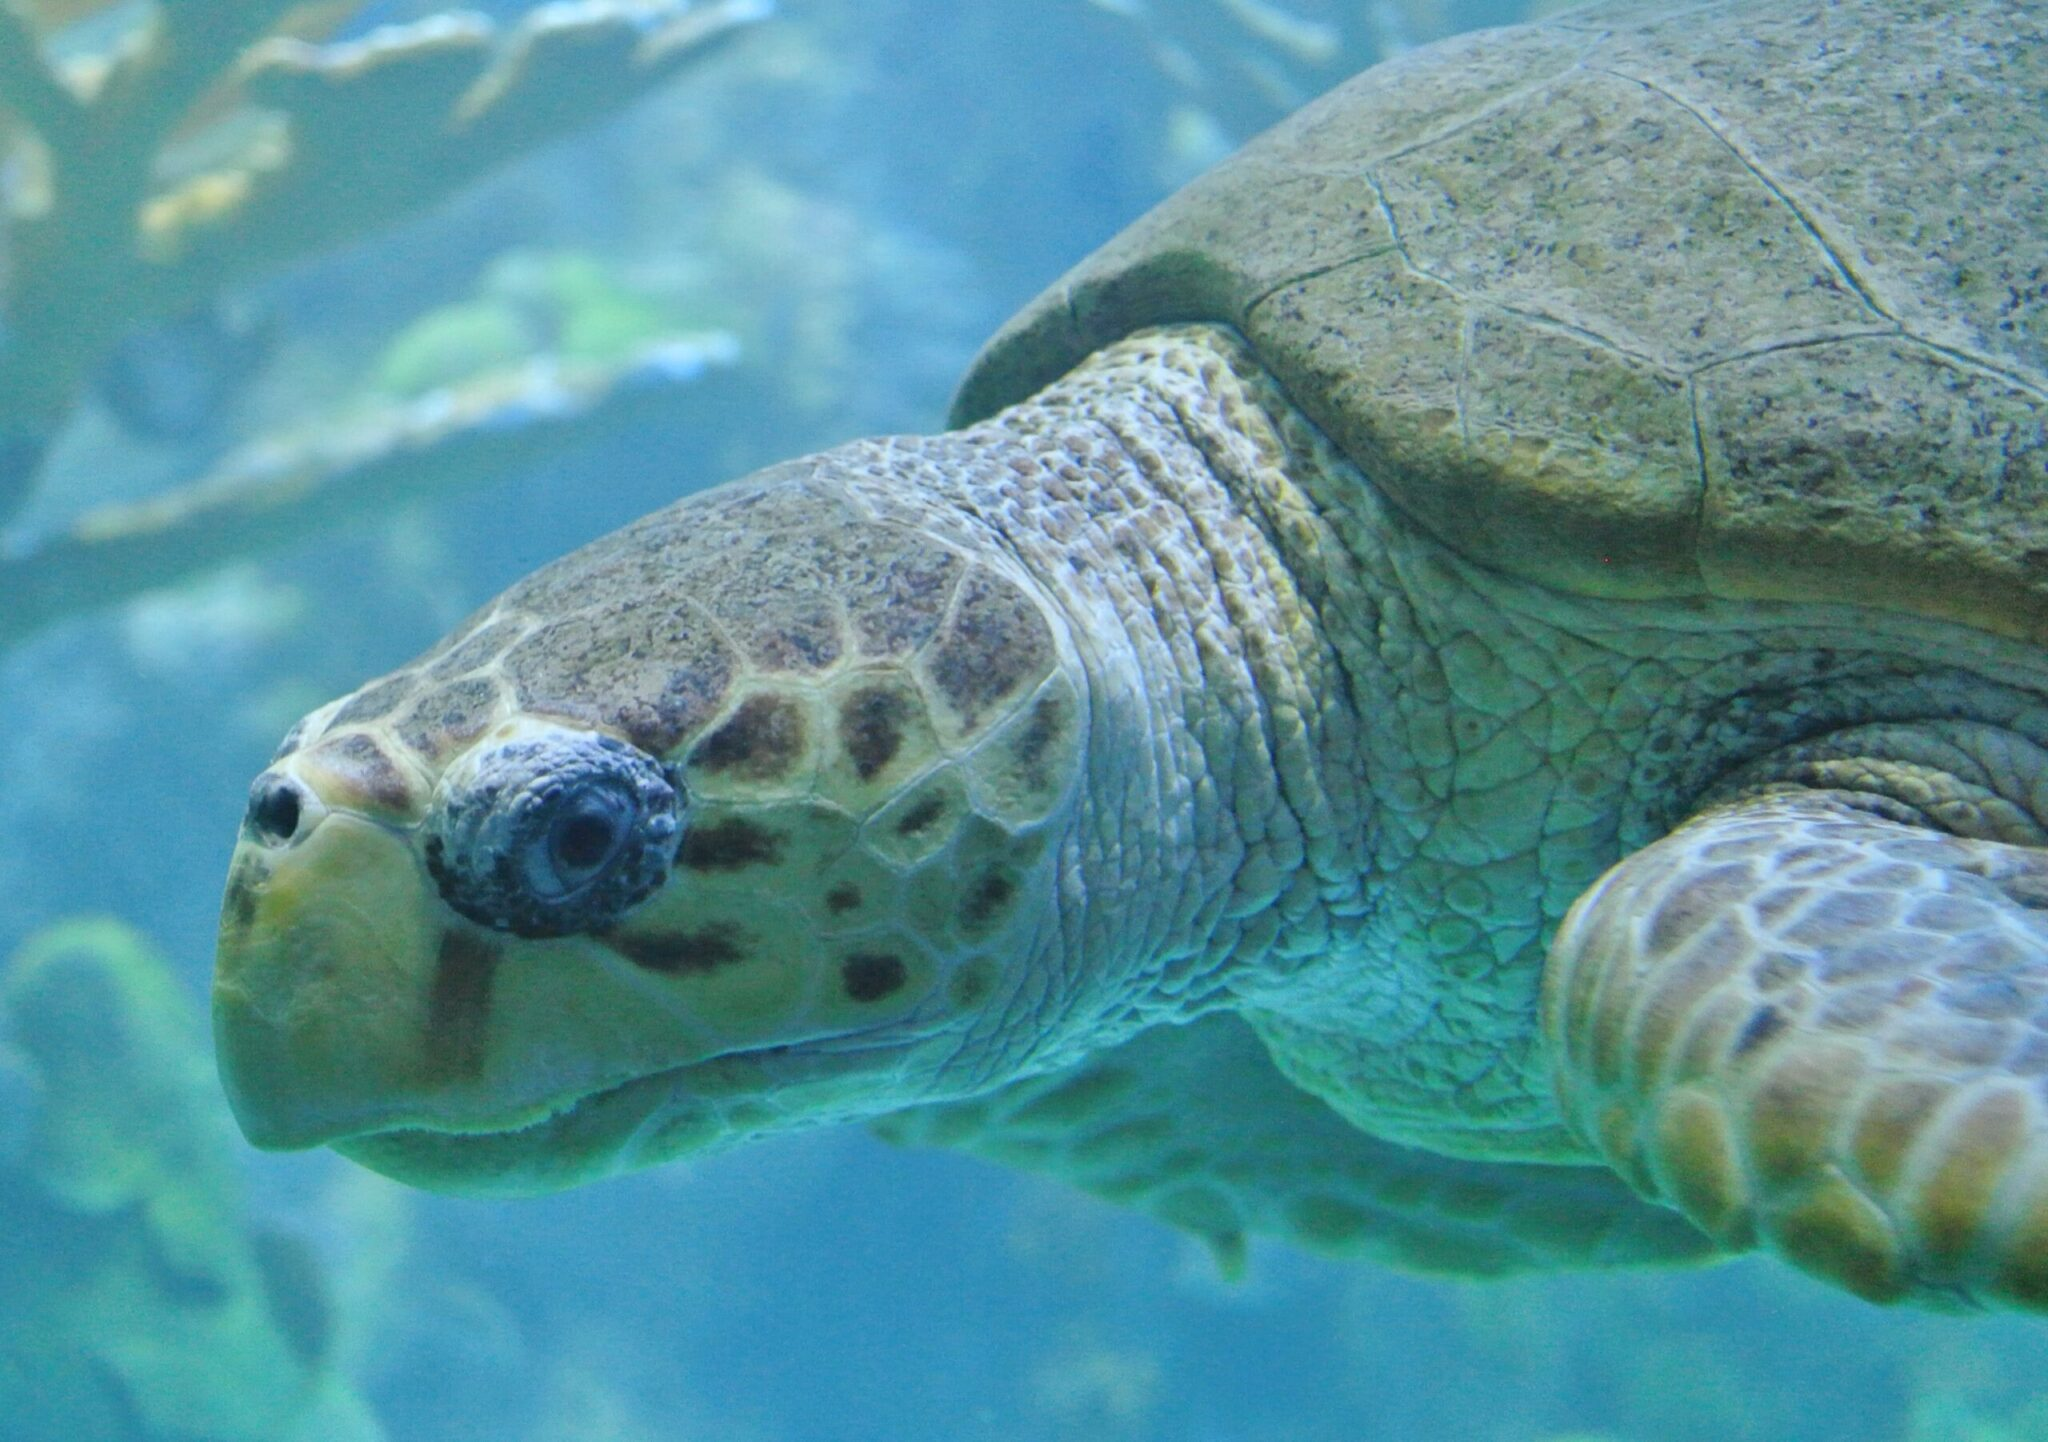 Sea turtle photographed by Lorianne DiSabato at the New England Aquarium in Boston, MA (CC BY-NC-ND 2.0)